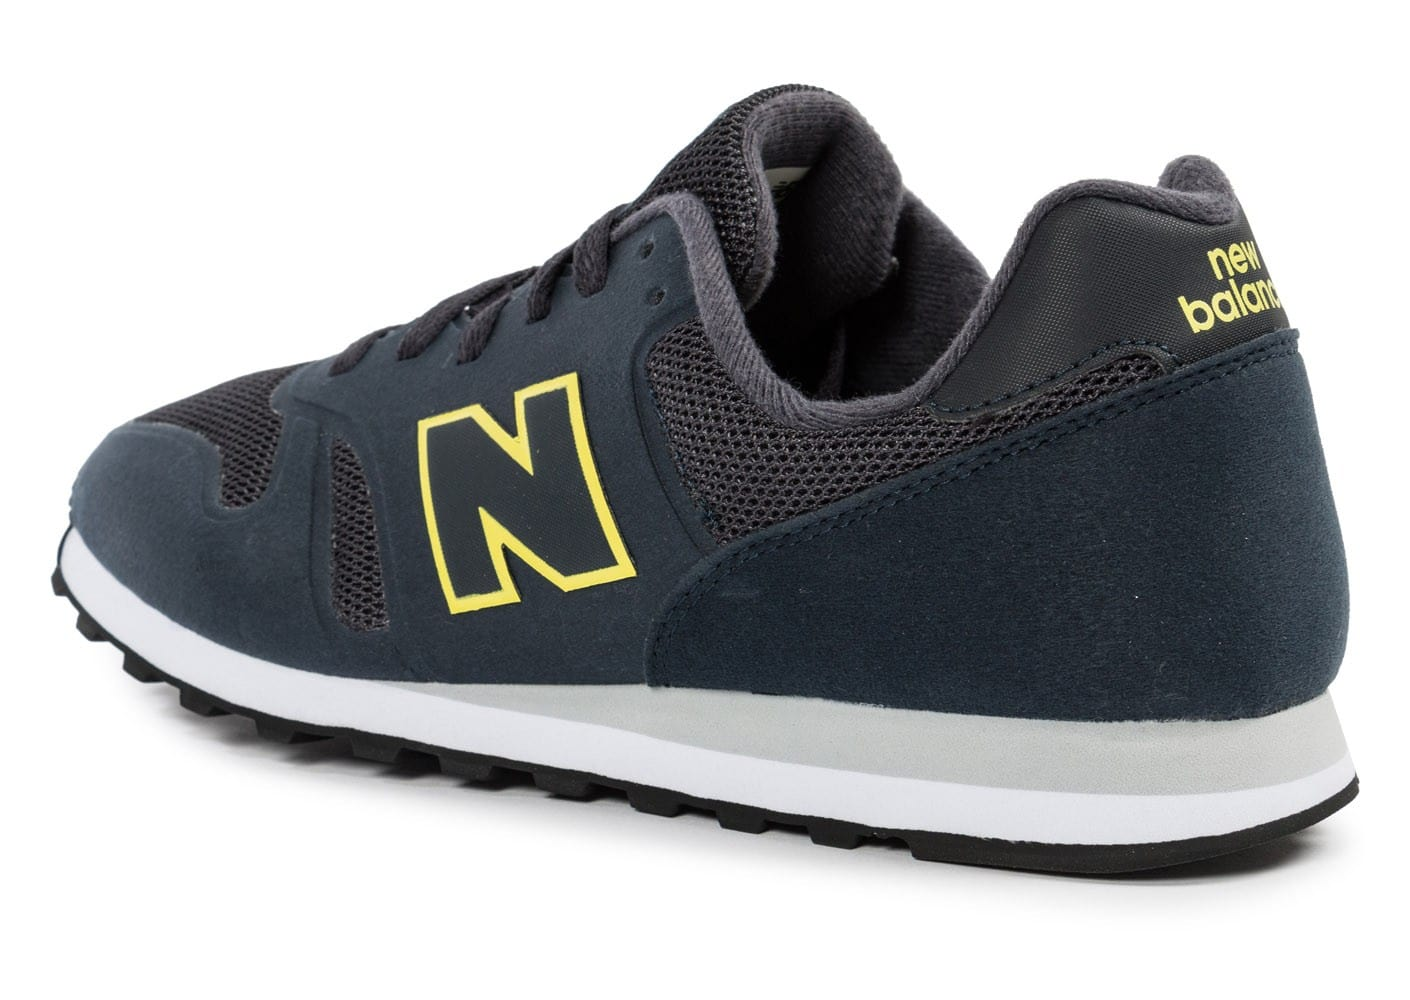 check out 3ca18 589f3 0538-chaussures-new-balance-md373-ny-bleu-marine-vue-arriere 1.jpg